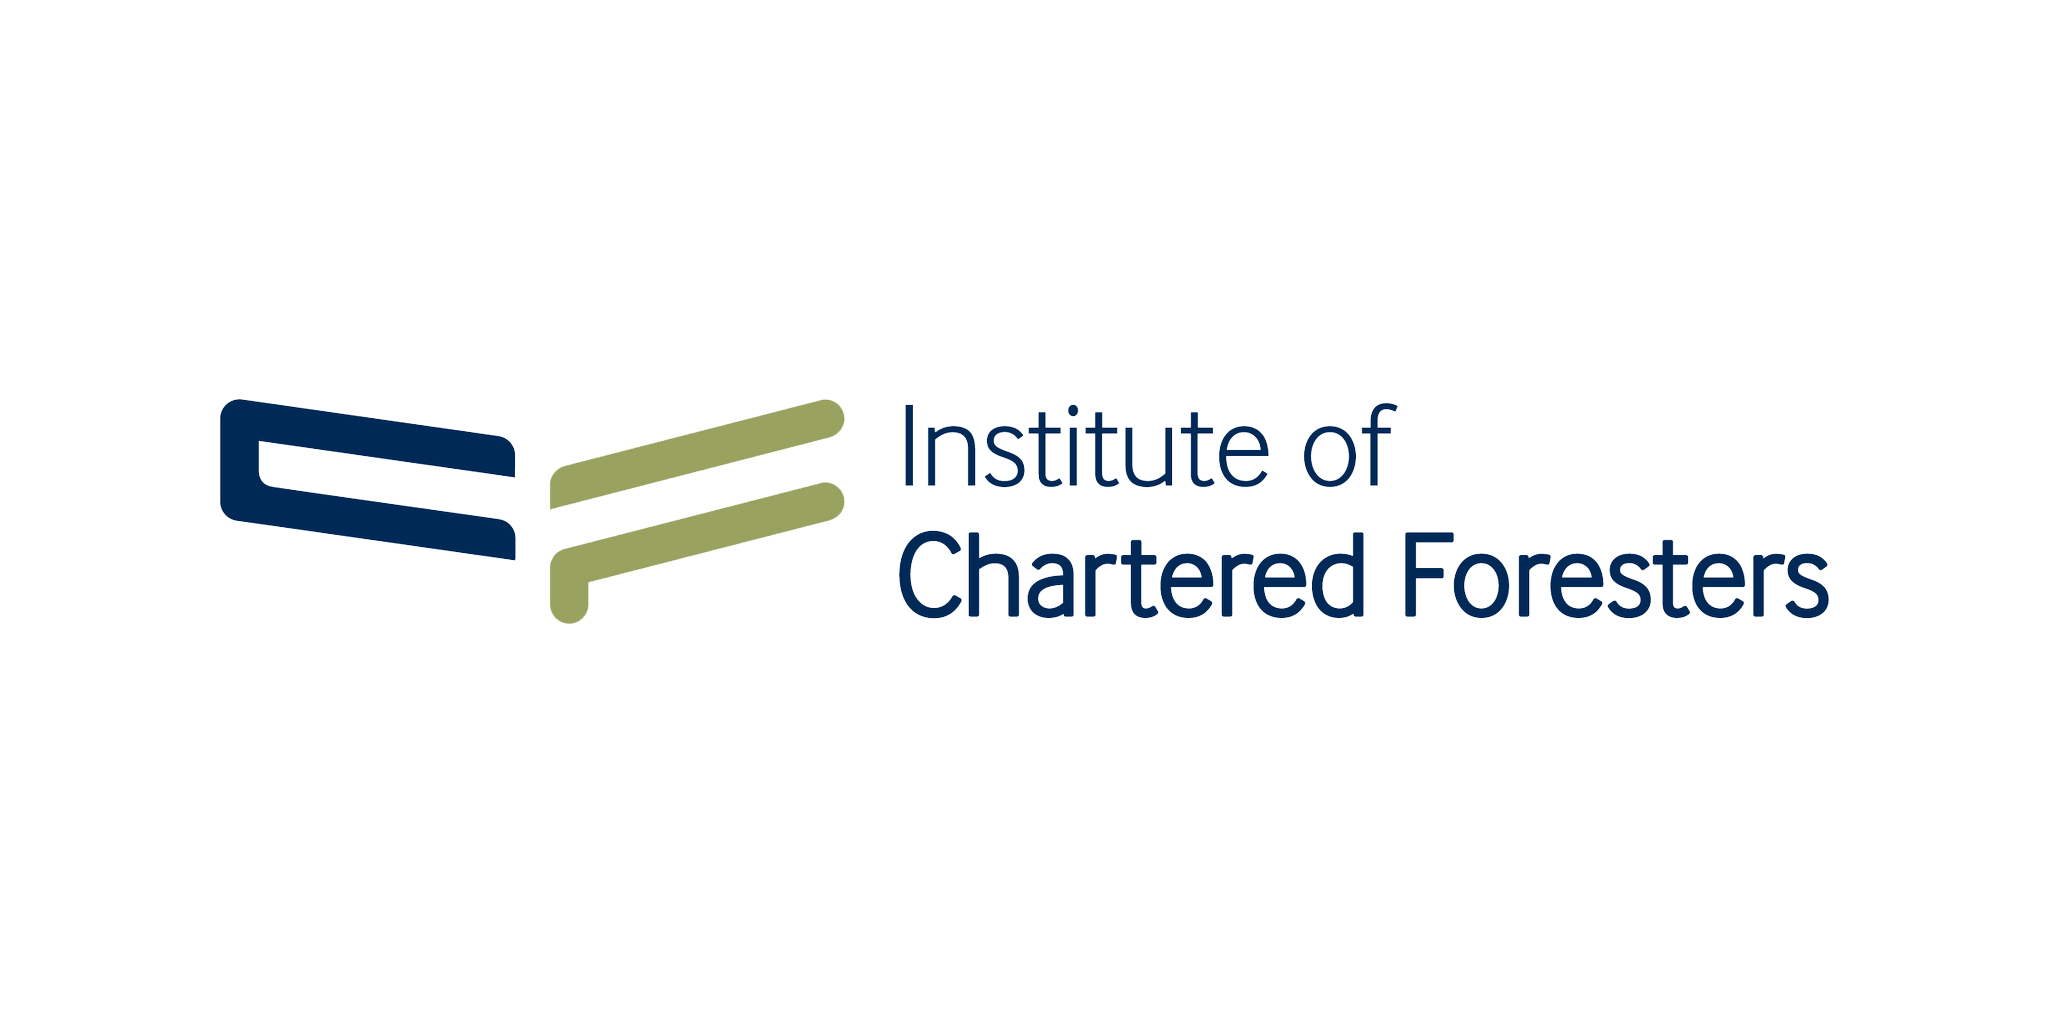 Institute of chartered foresters